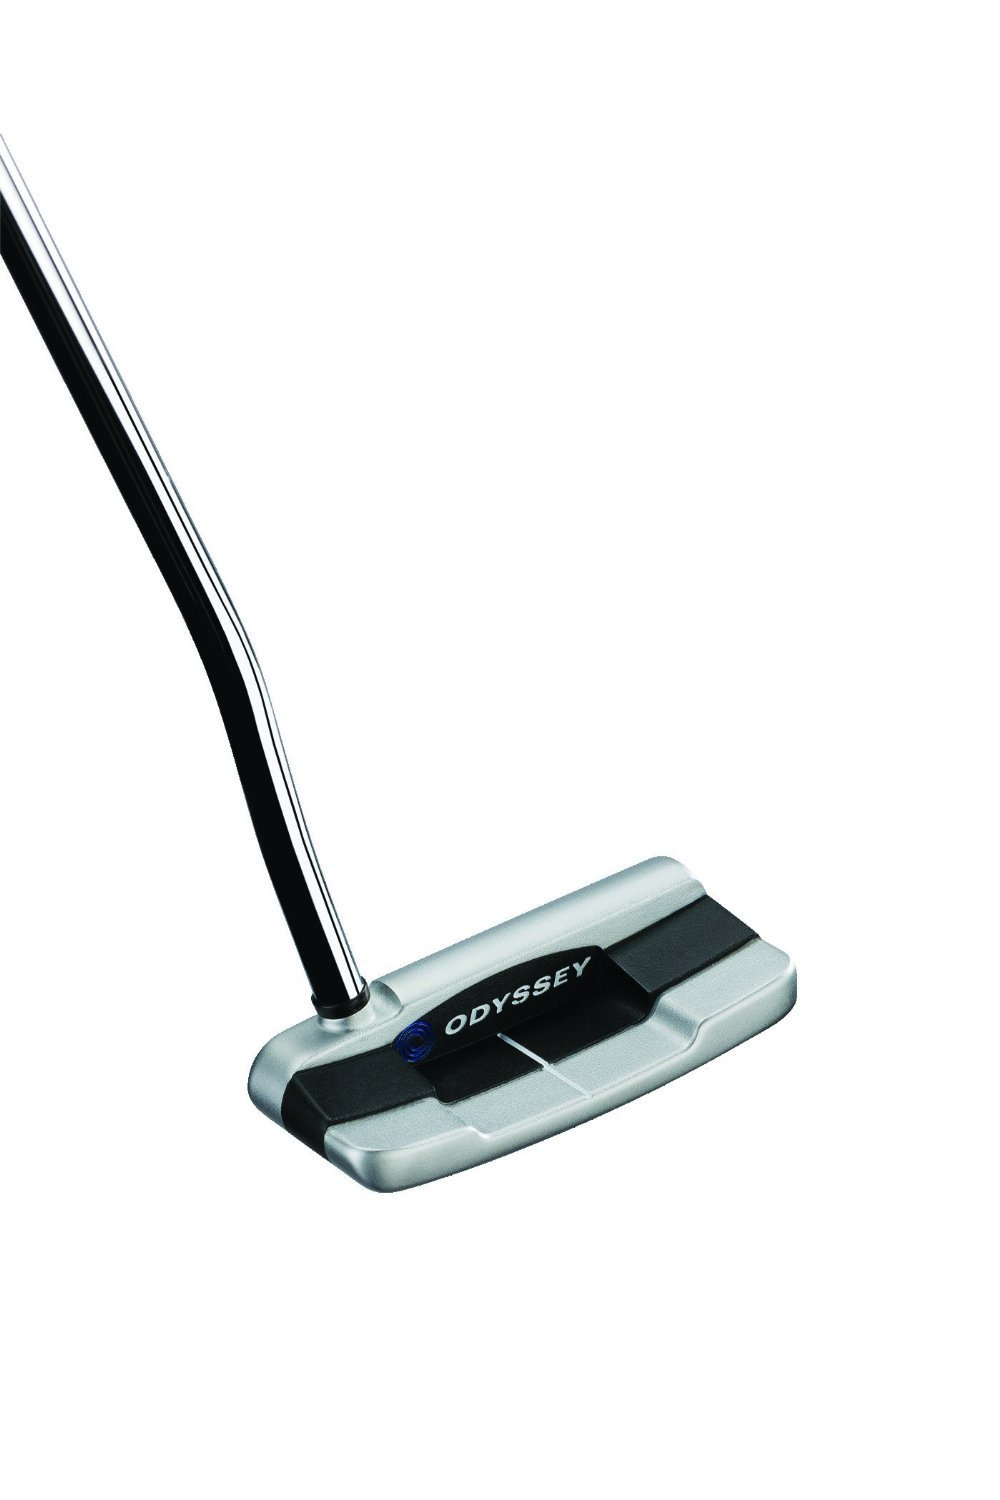 Odyssey Golf- LH Works Versa Tank Putter SuperStroke